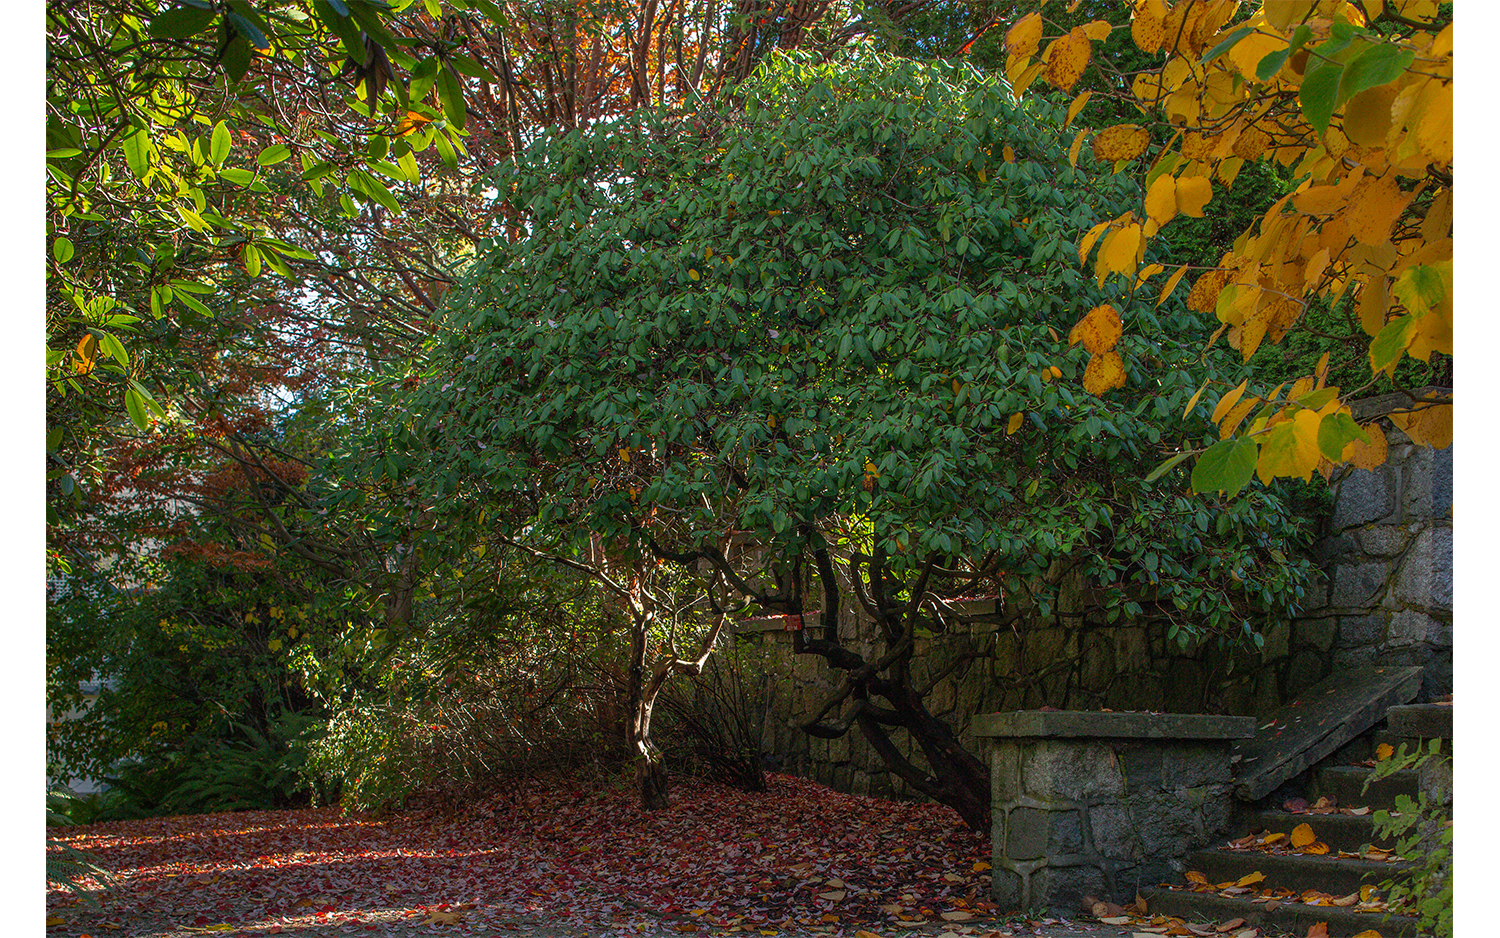 HS-All the trees__09W9117_6420-06.jpg